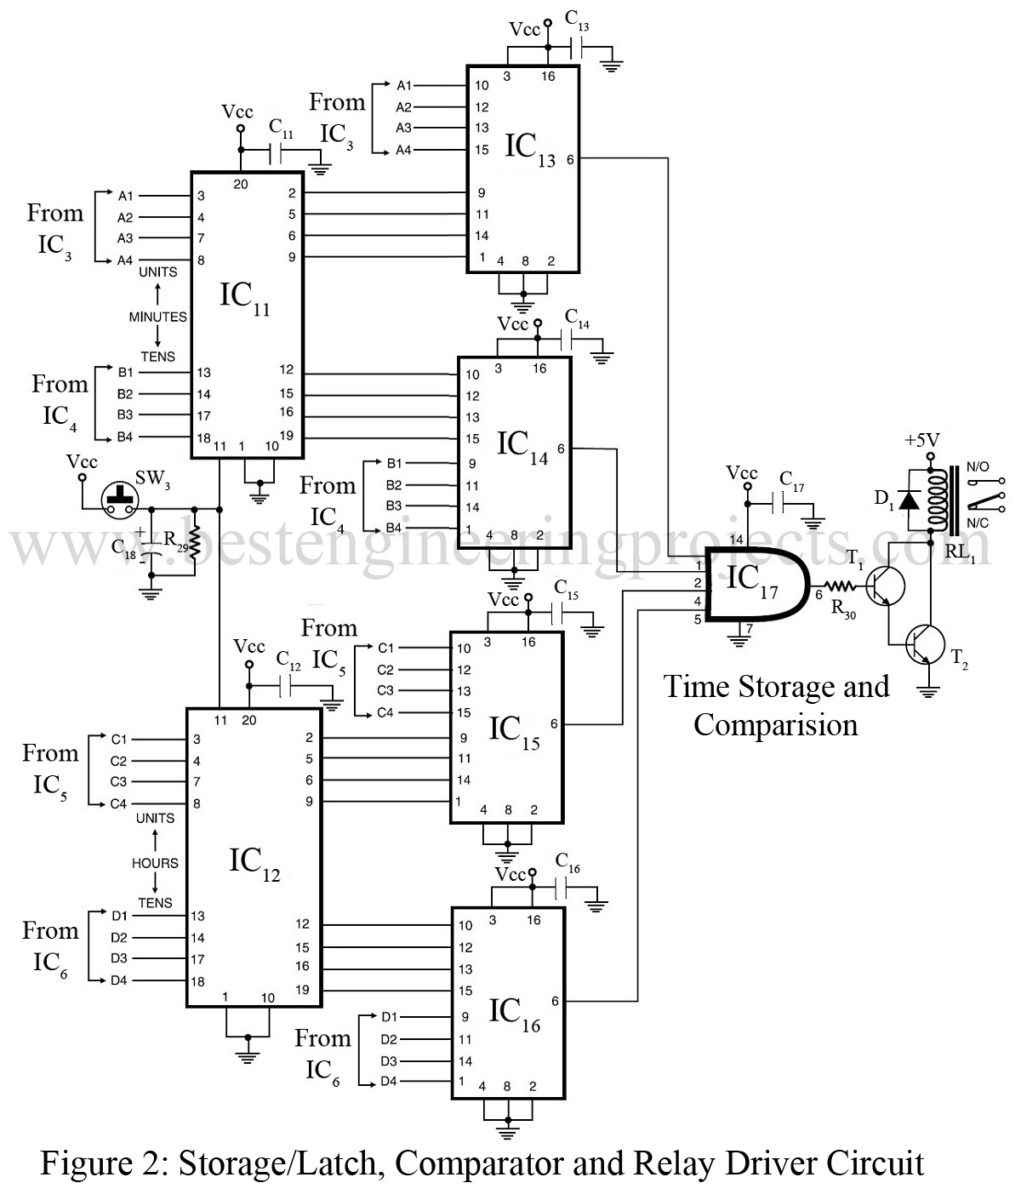 24 Hour Digital Clock And Timer Circuit Engineering Projects Regulator Likewise Switching Power Supply Schematic Diagram However We Should Note That Bcd Outputs Of The Four Counter Ics Ic3 Through Ic6 Have Been Terminated On Sip Connectors In Pcb